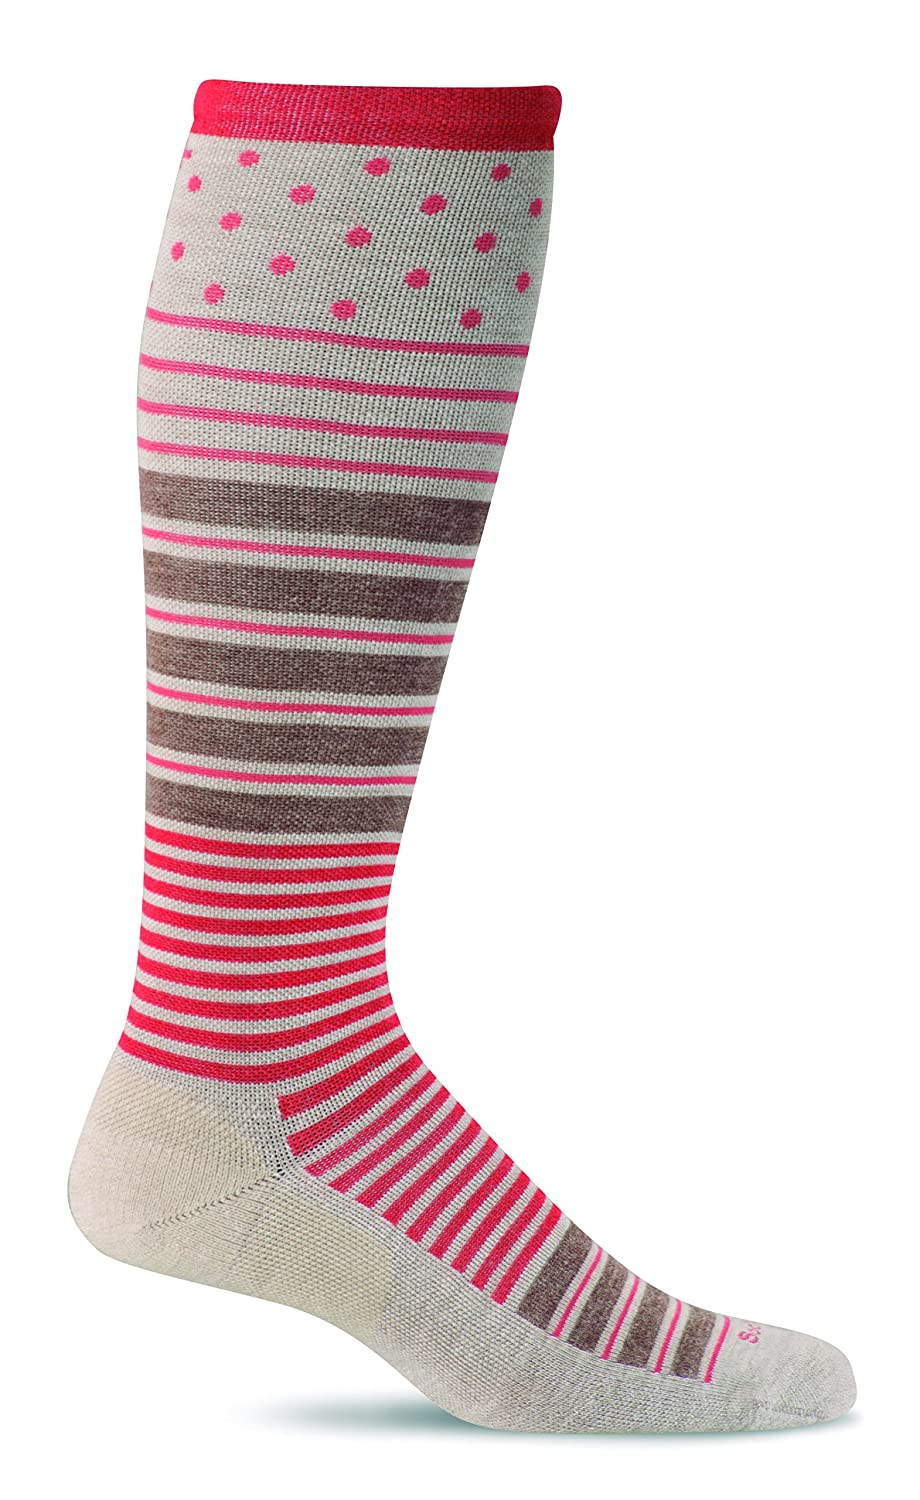 Sockwell Women's Twister Graduated Compression Socks-Ideal for-Travel-Sports-Nurses-Pregnancy-Reduces Swelling Goodhew SW29W900